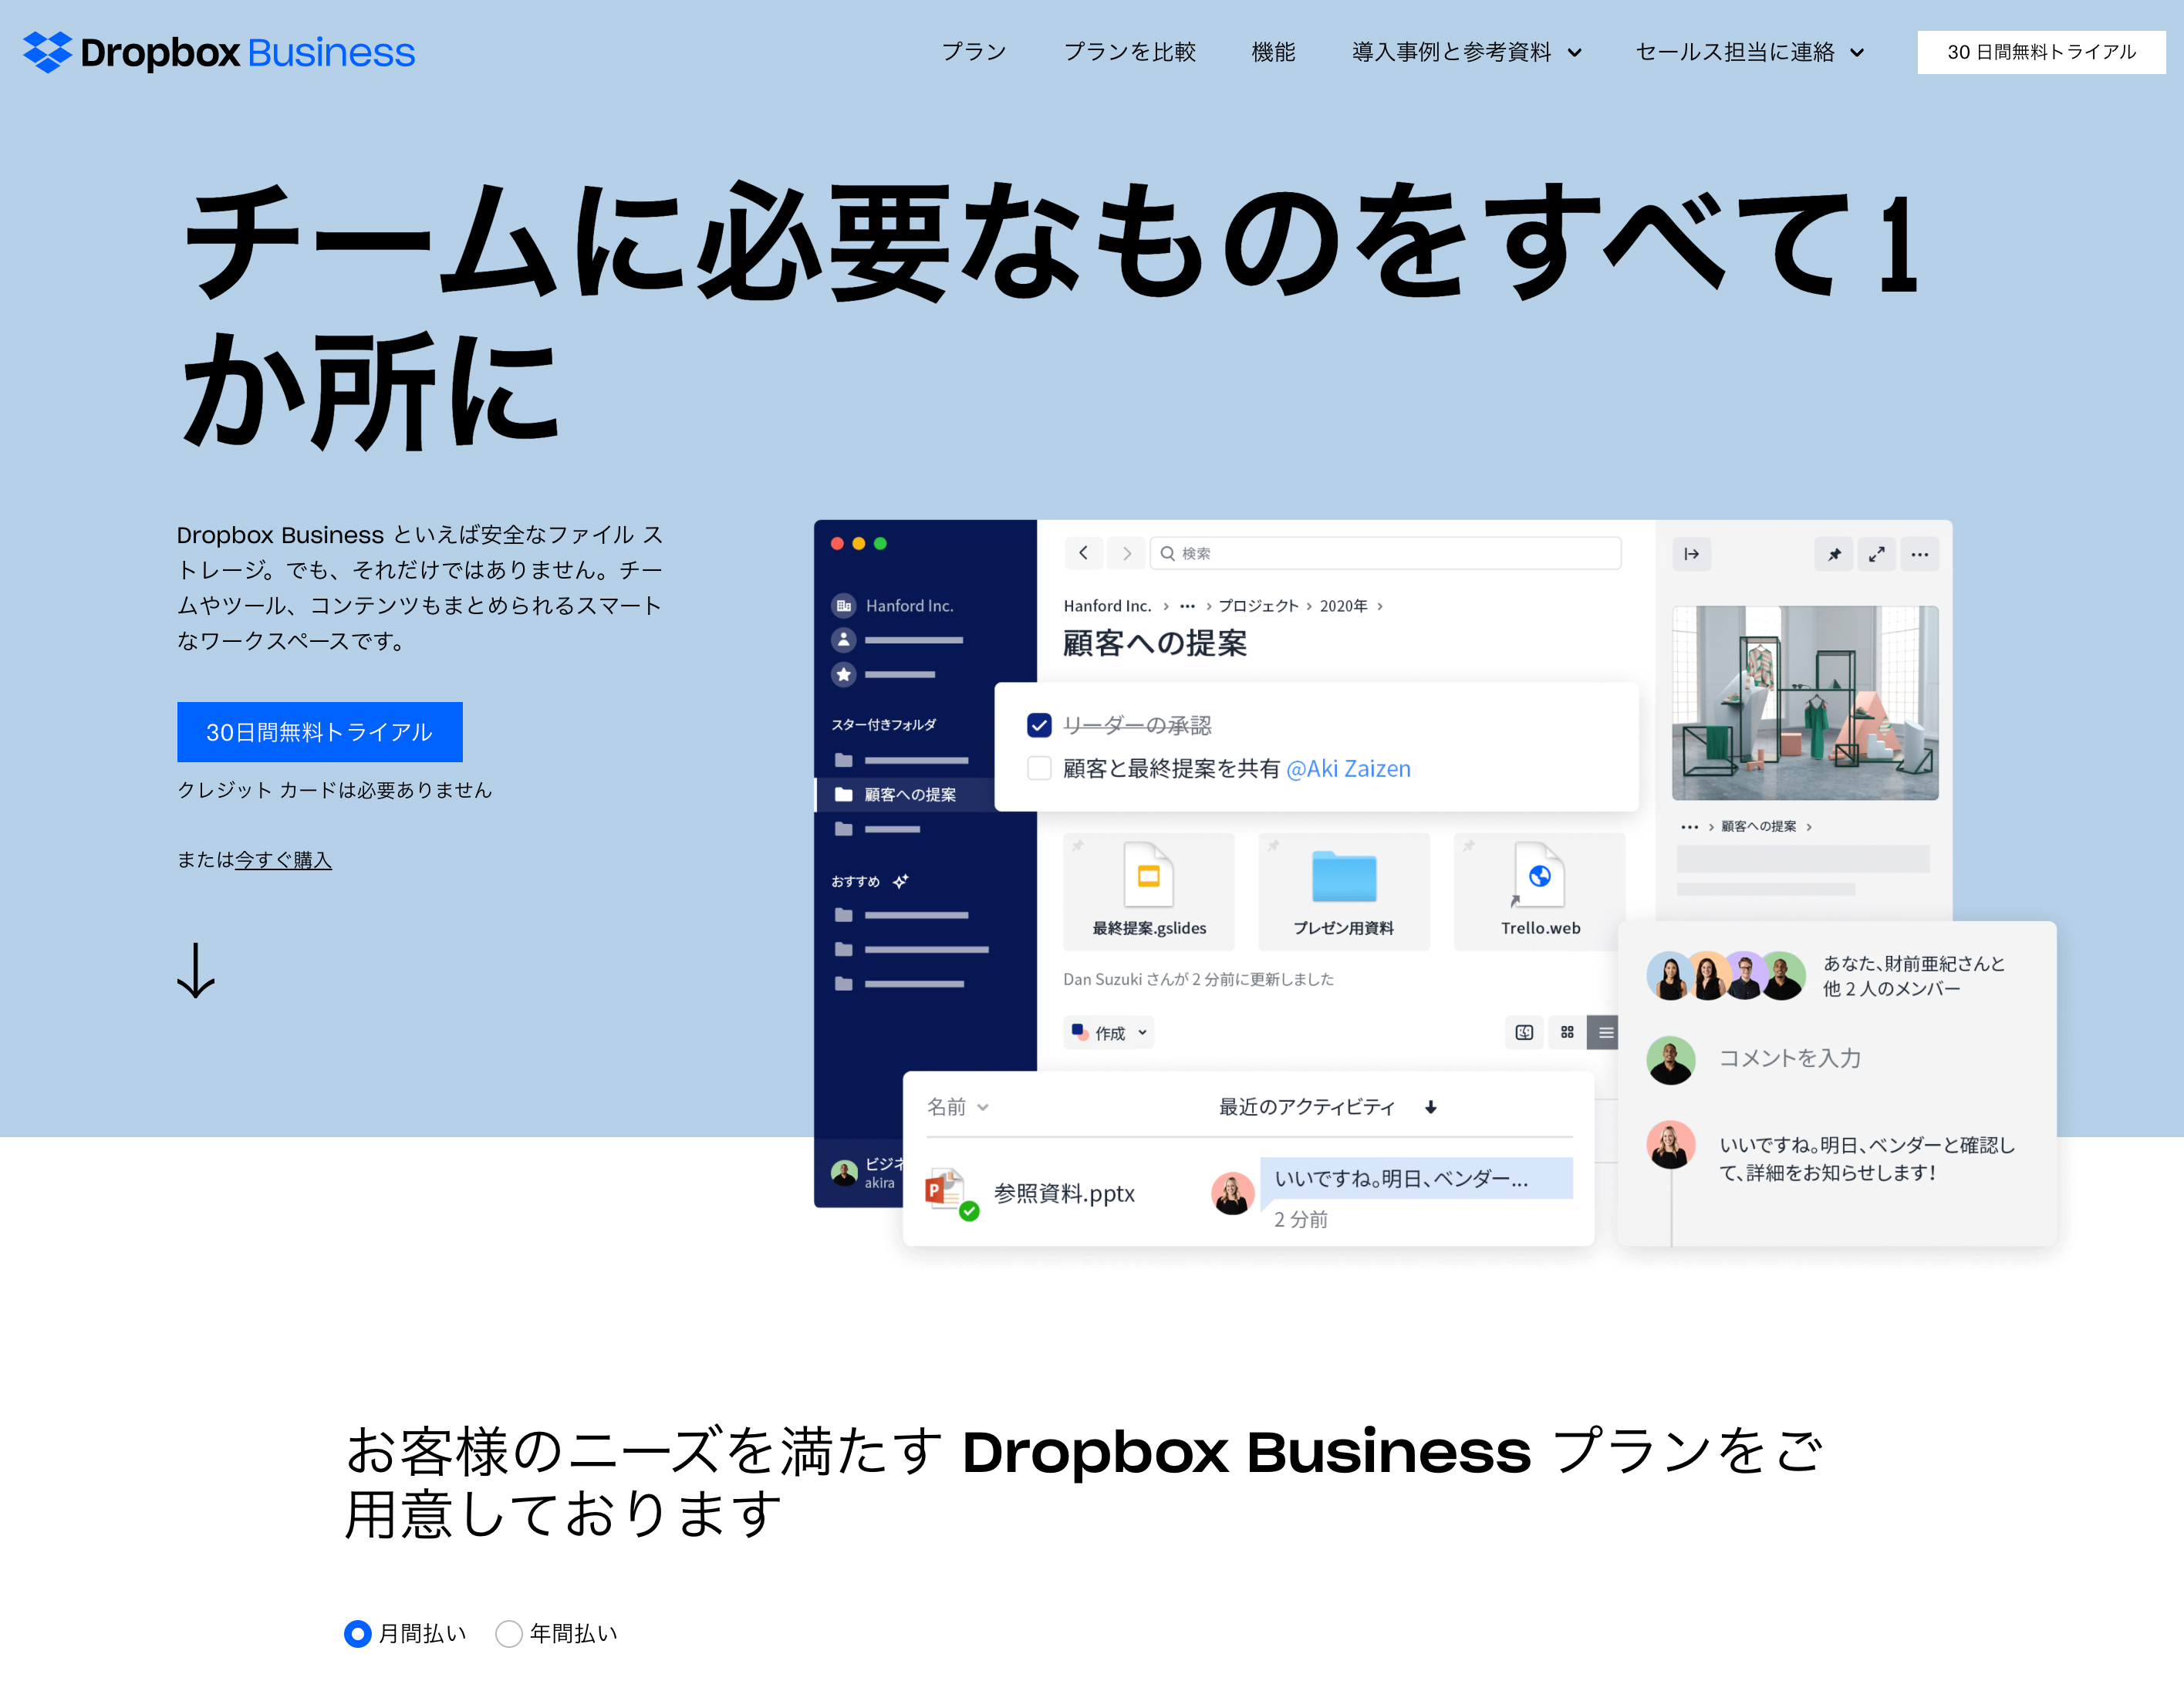 Dropbox Businessの公式ページ